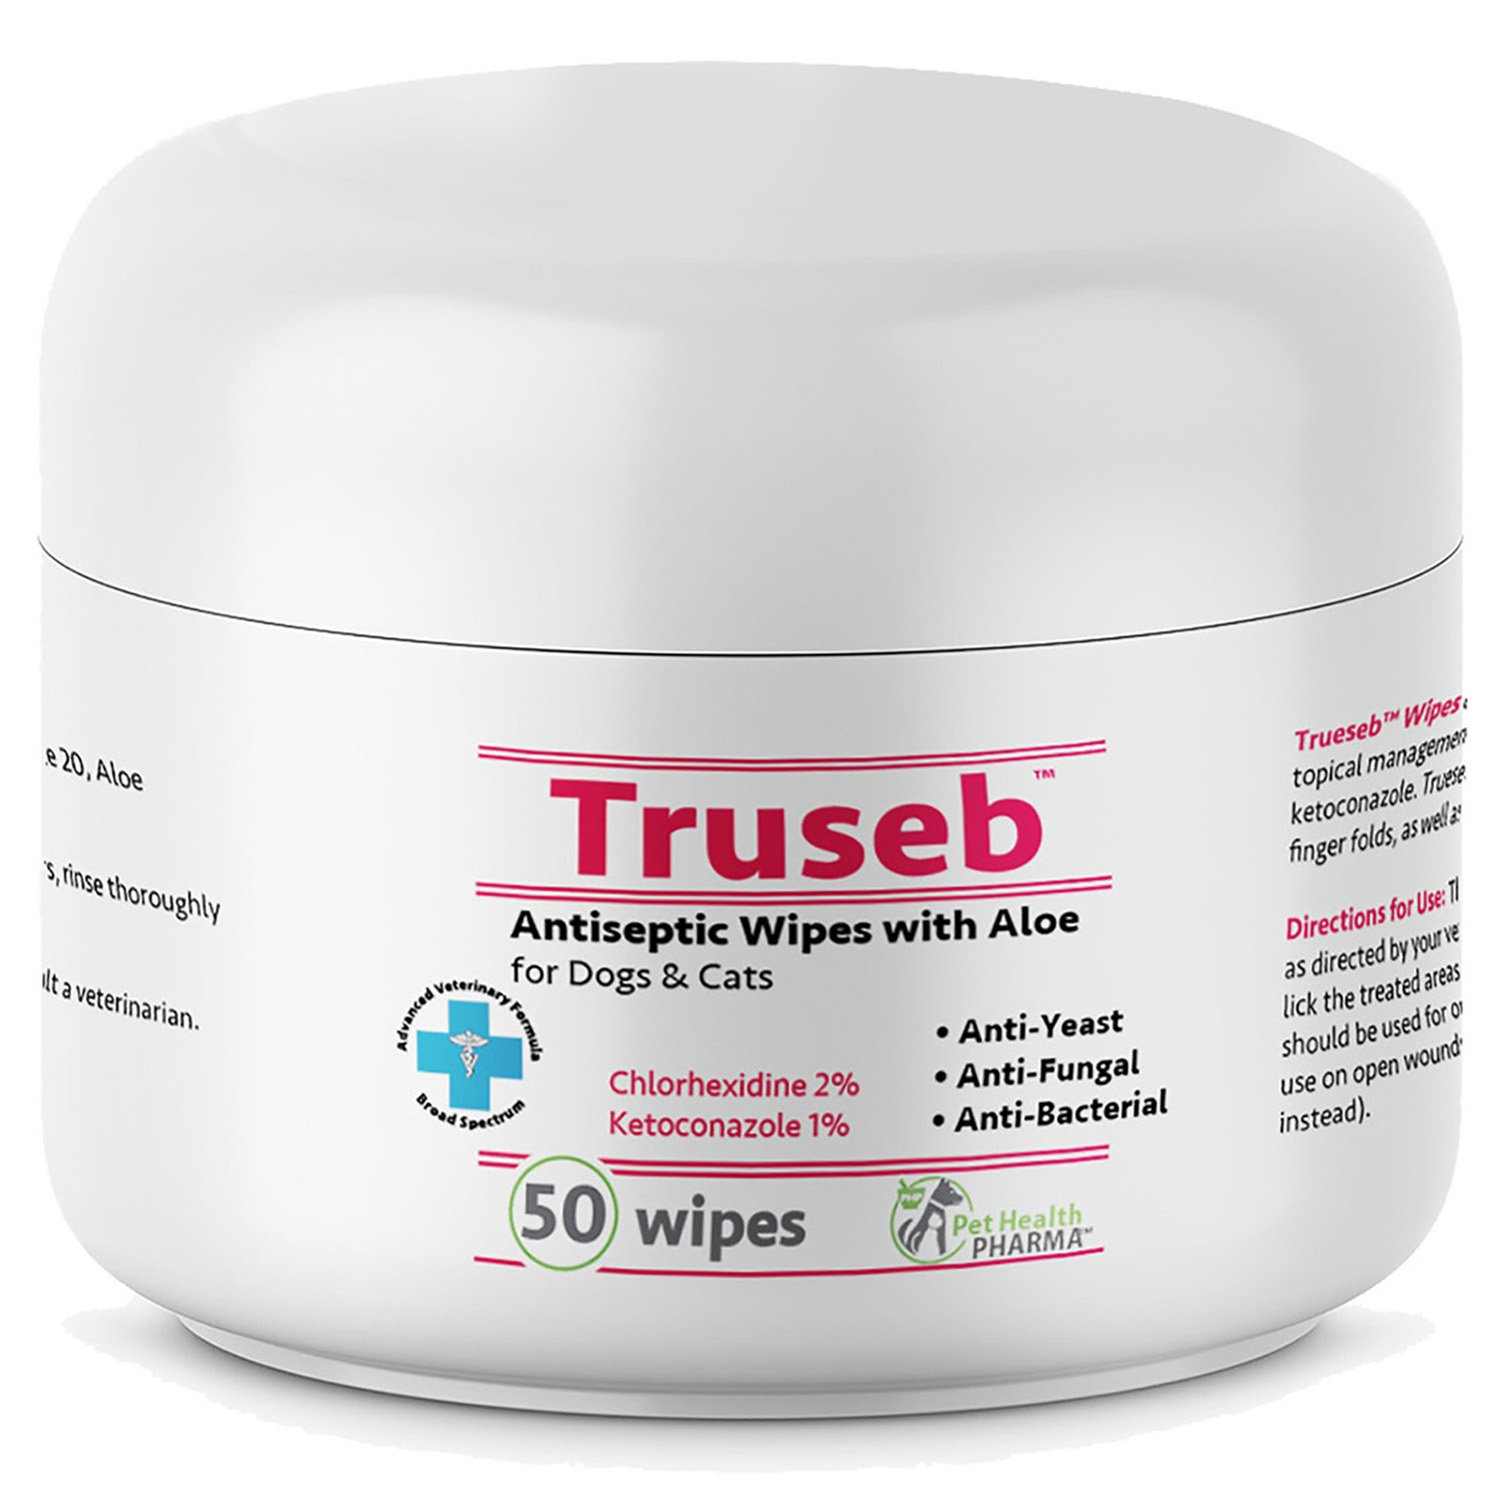 Truseb | #1 Chlorhexidine Wipes with Ketoconazole-50 Antiseptic Pads with Aloe for Dogs & Cats-Antifungal & Antibacterial-Cleans Face, Ears & Body,Against Pyoderma, Acne&Hot Spots, Made USA (50 Wipes)